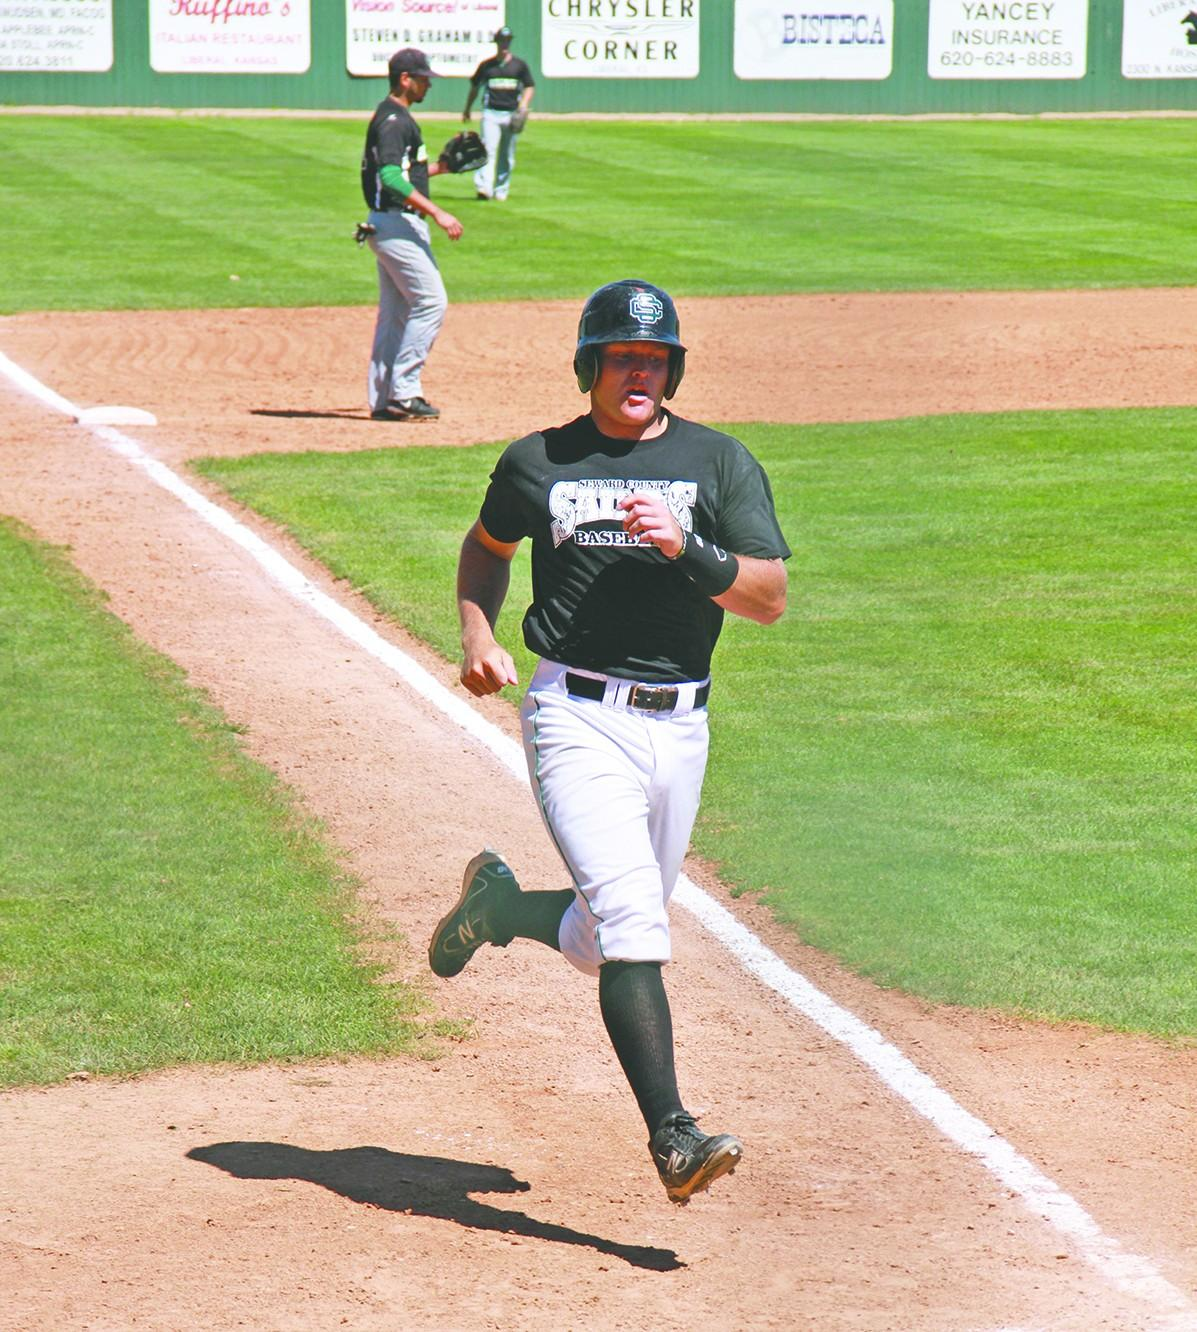 Brandon Rix runs to home plate during the Saints scrimmage against Clarendon College. Rix, an infielder for the Saints, earned the NJCAA Superior Academic Award last year. Crusader photo/Maria Lara